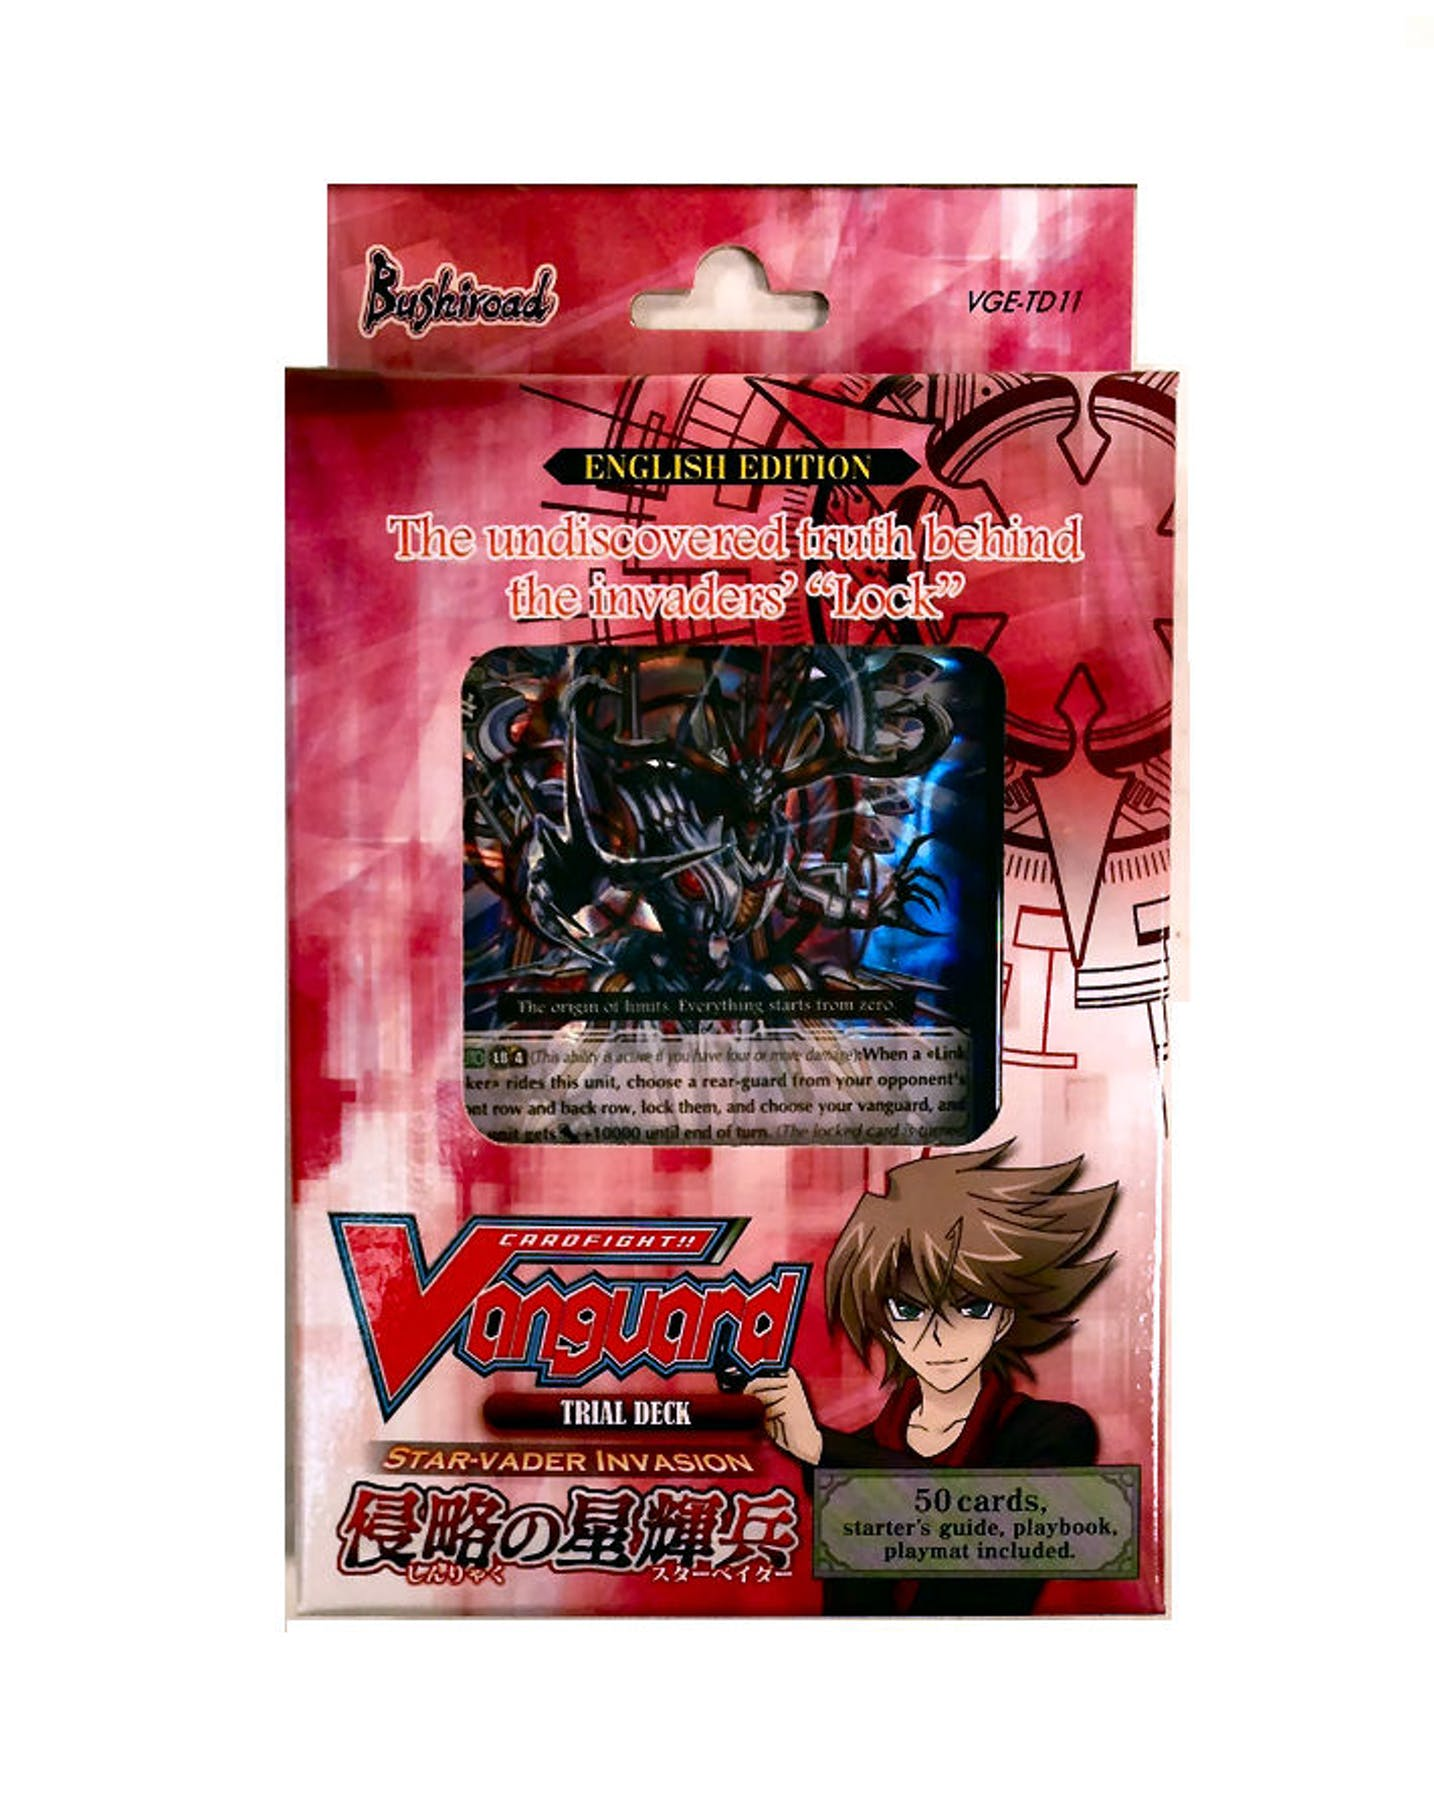 Bushiroad Cardfight Vanguard Star Vader Invasion Trial